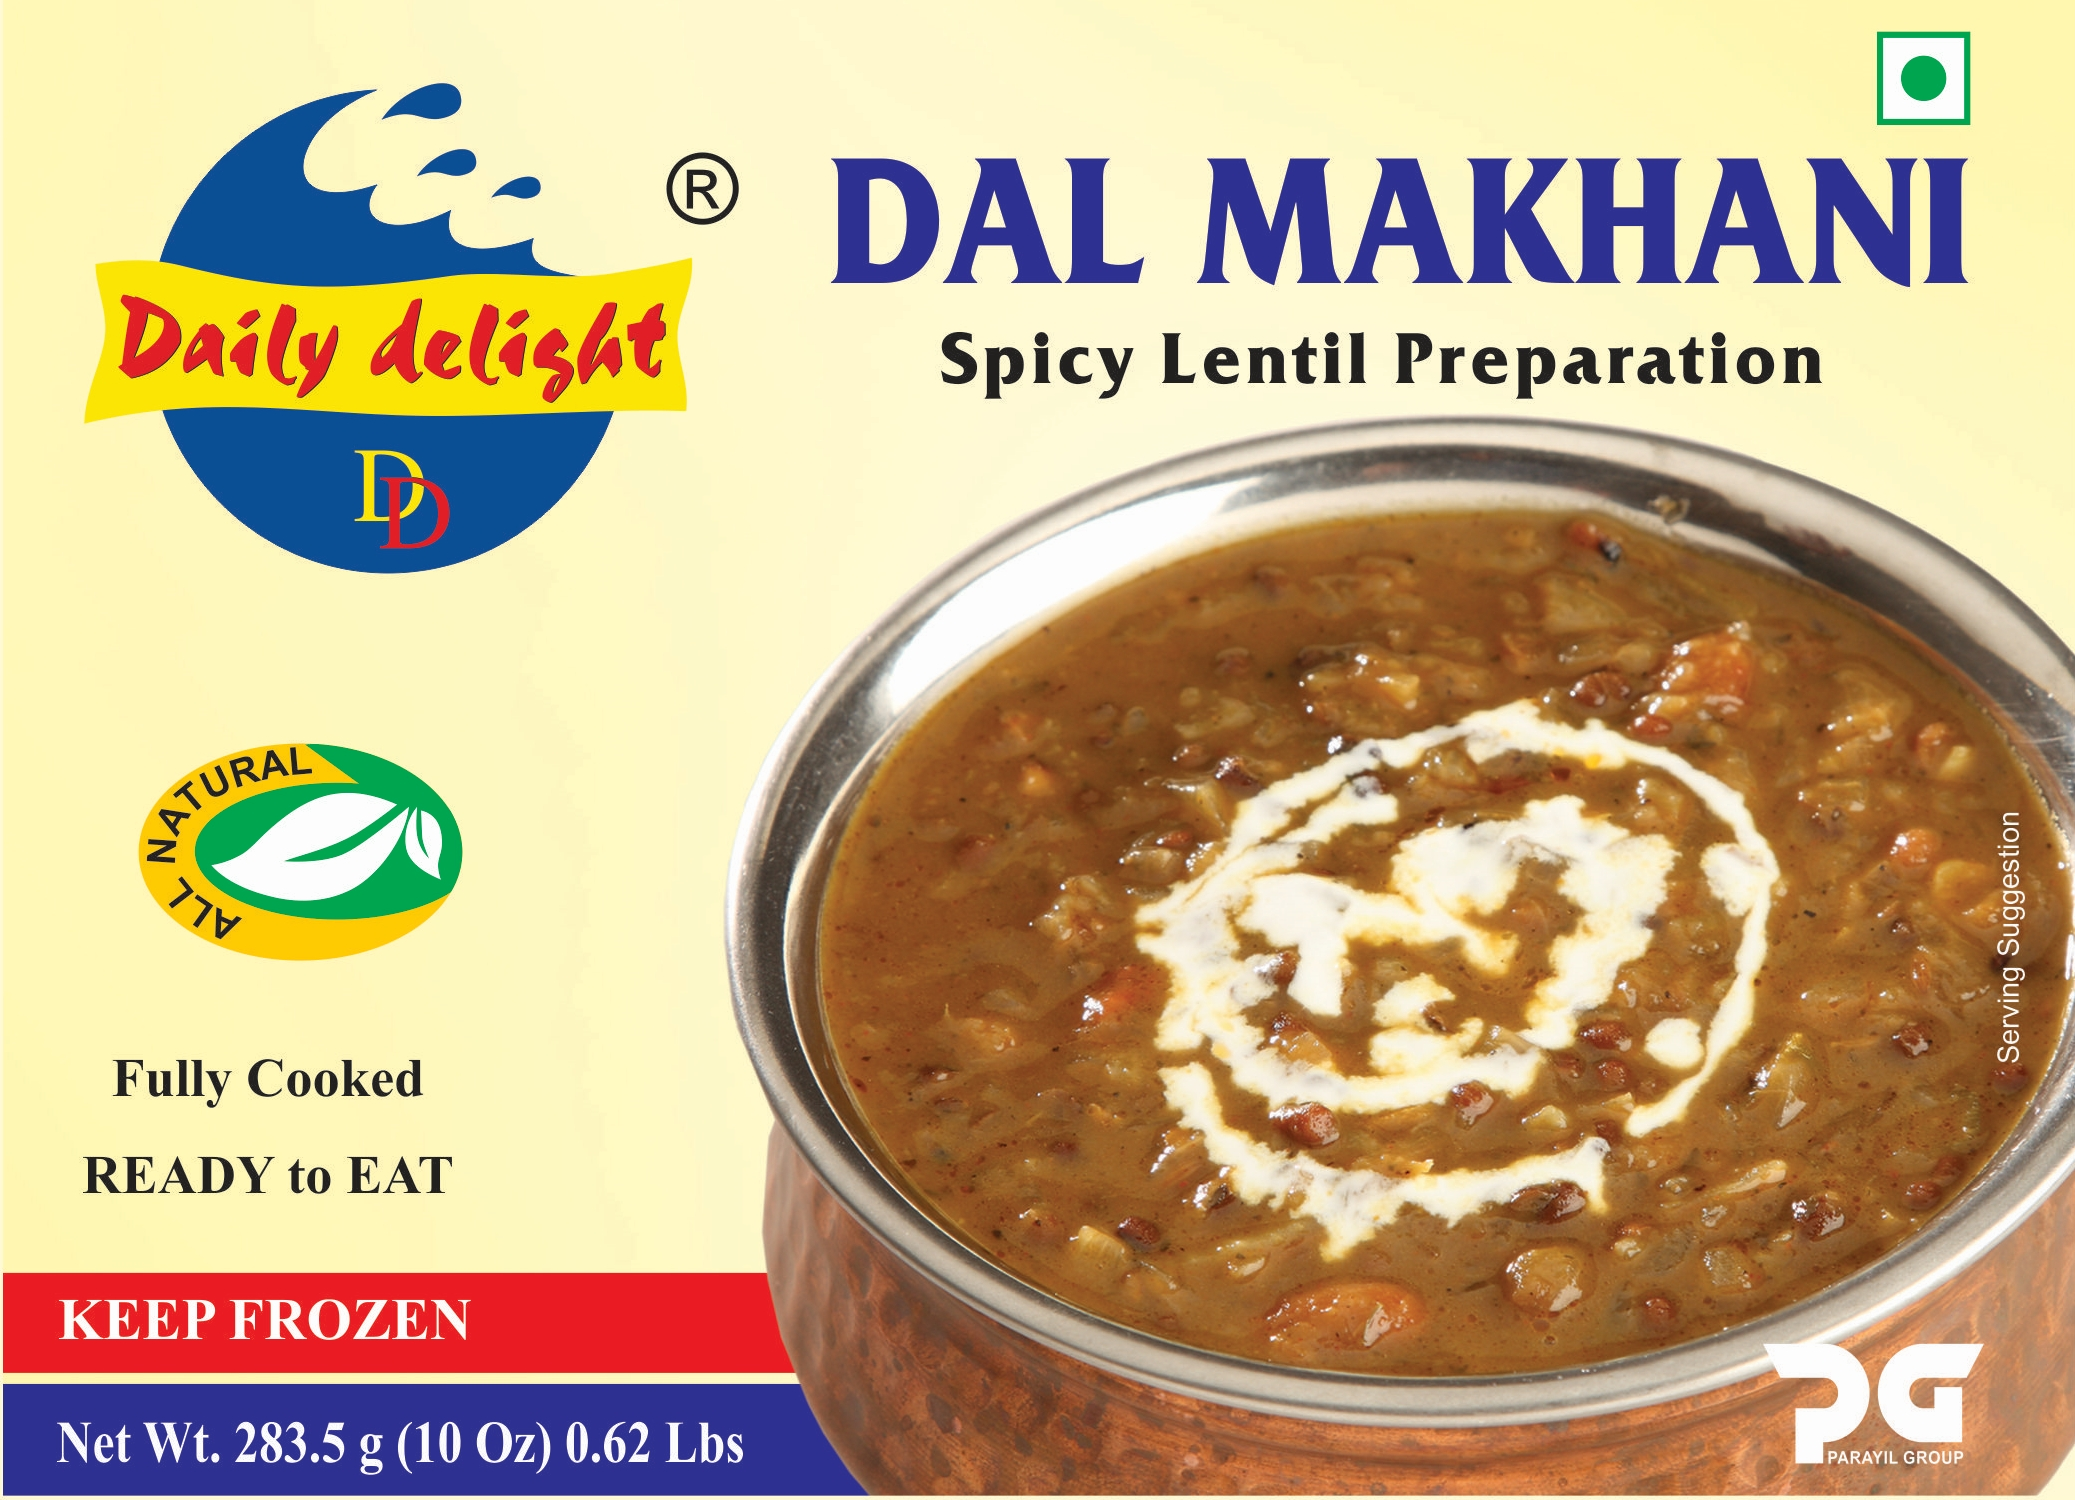 Daily Delight Dal Makhani